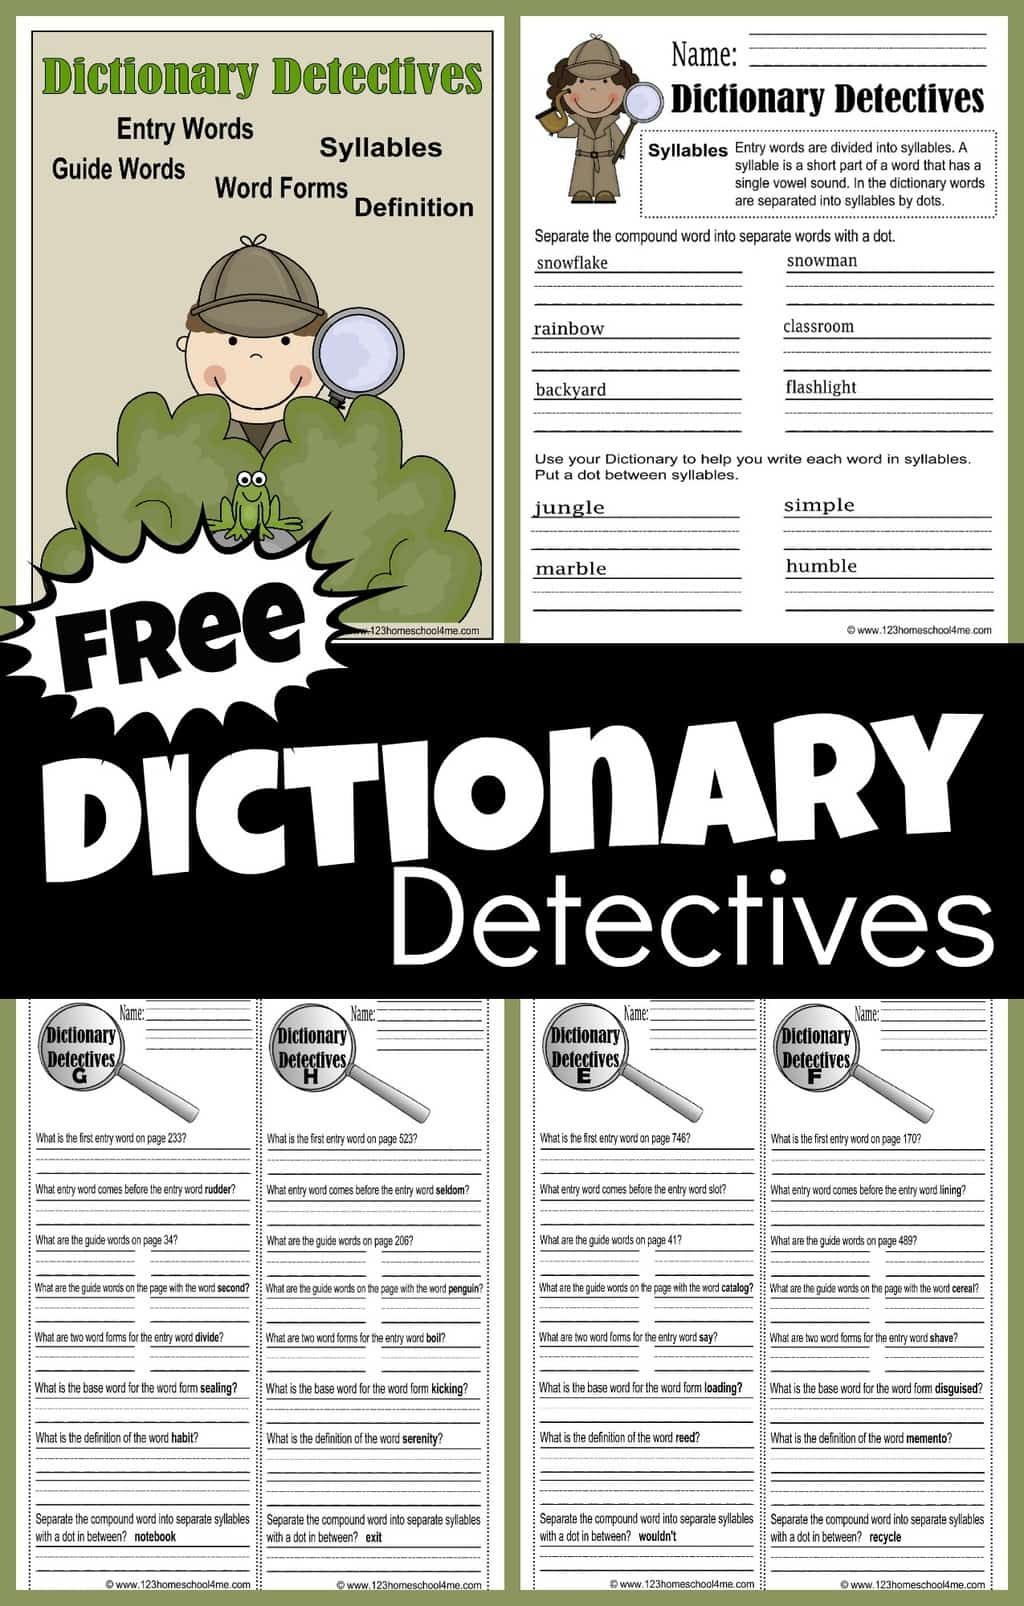 Free Dictionary Detective Worksheets For Kids Dictionary Skills Dictionary Activities Dictionary For Kids [ 1606 x 1024 Pixel ]